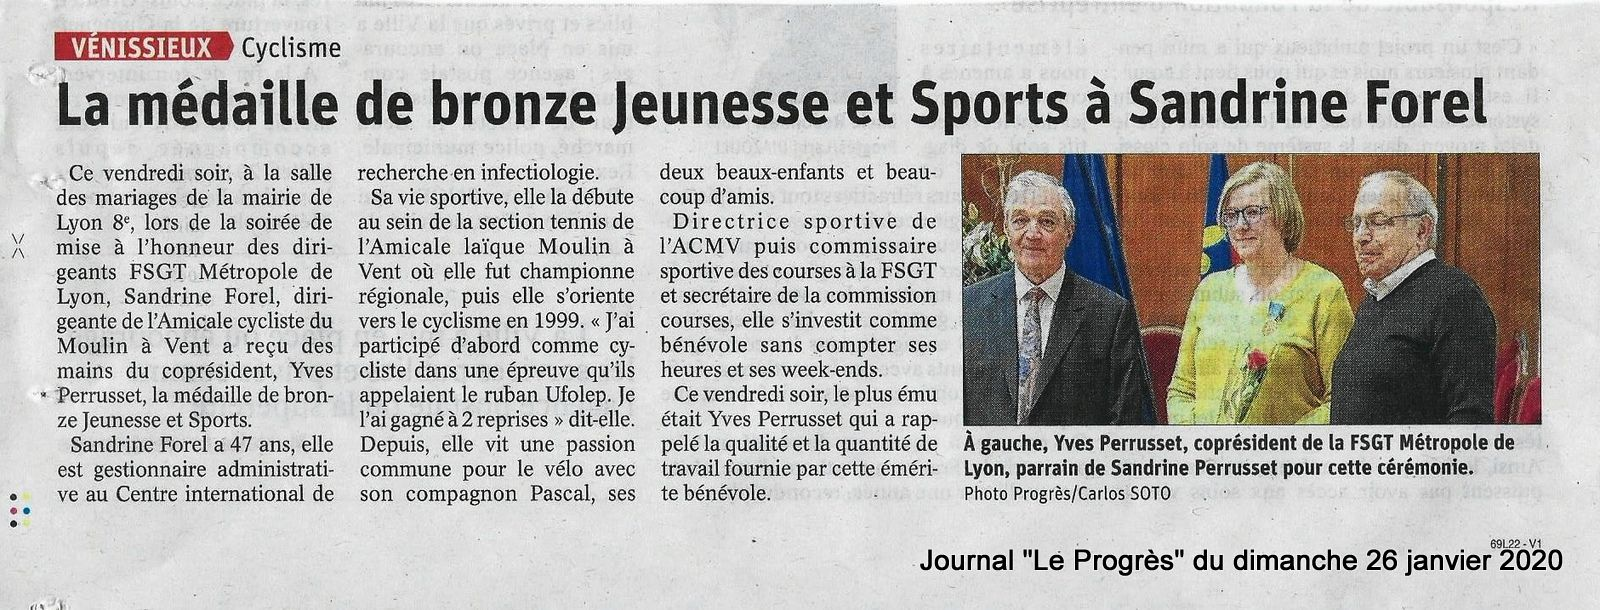 Article du journal Le Progrès du 26-01-2020